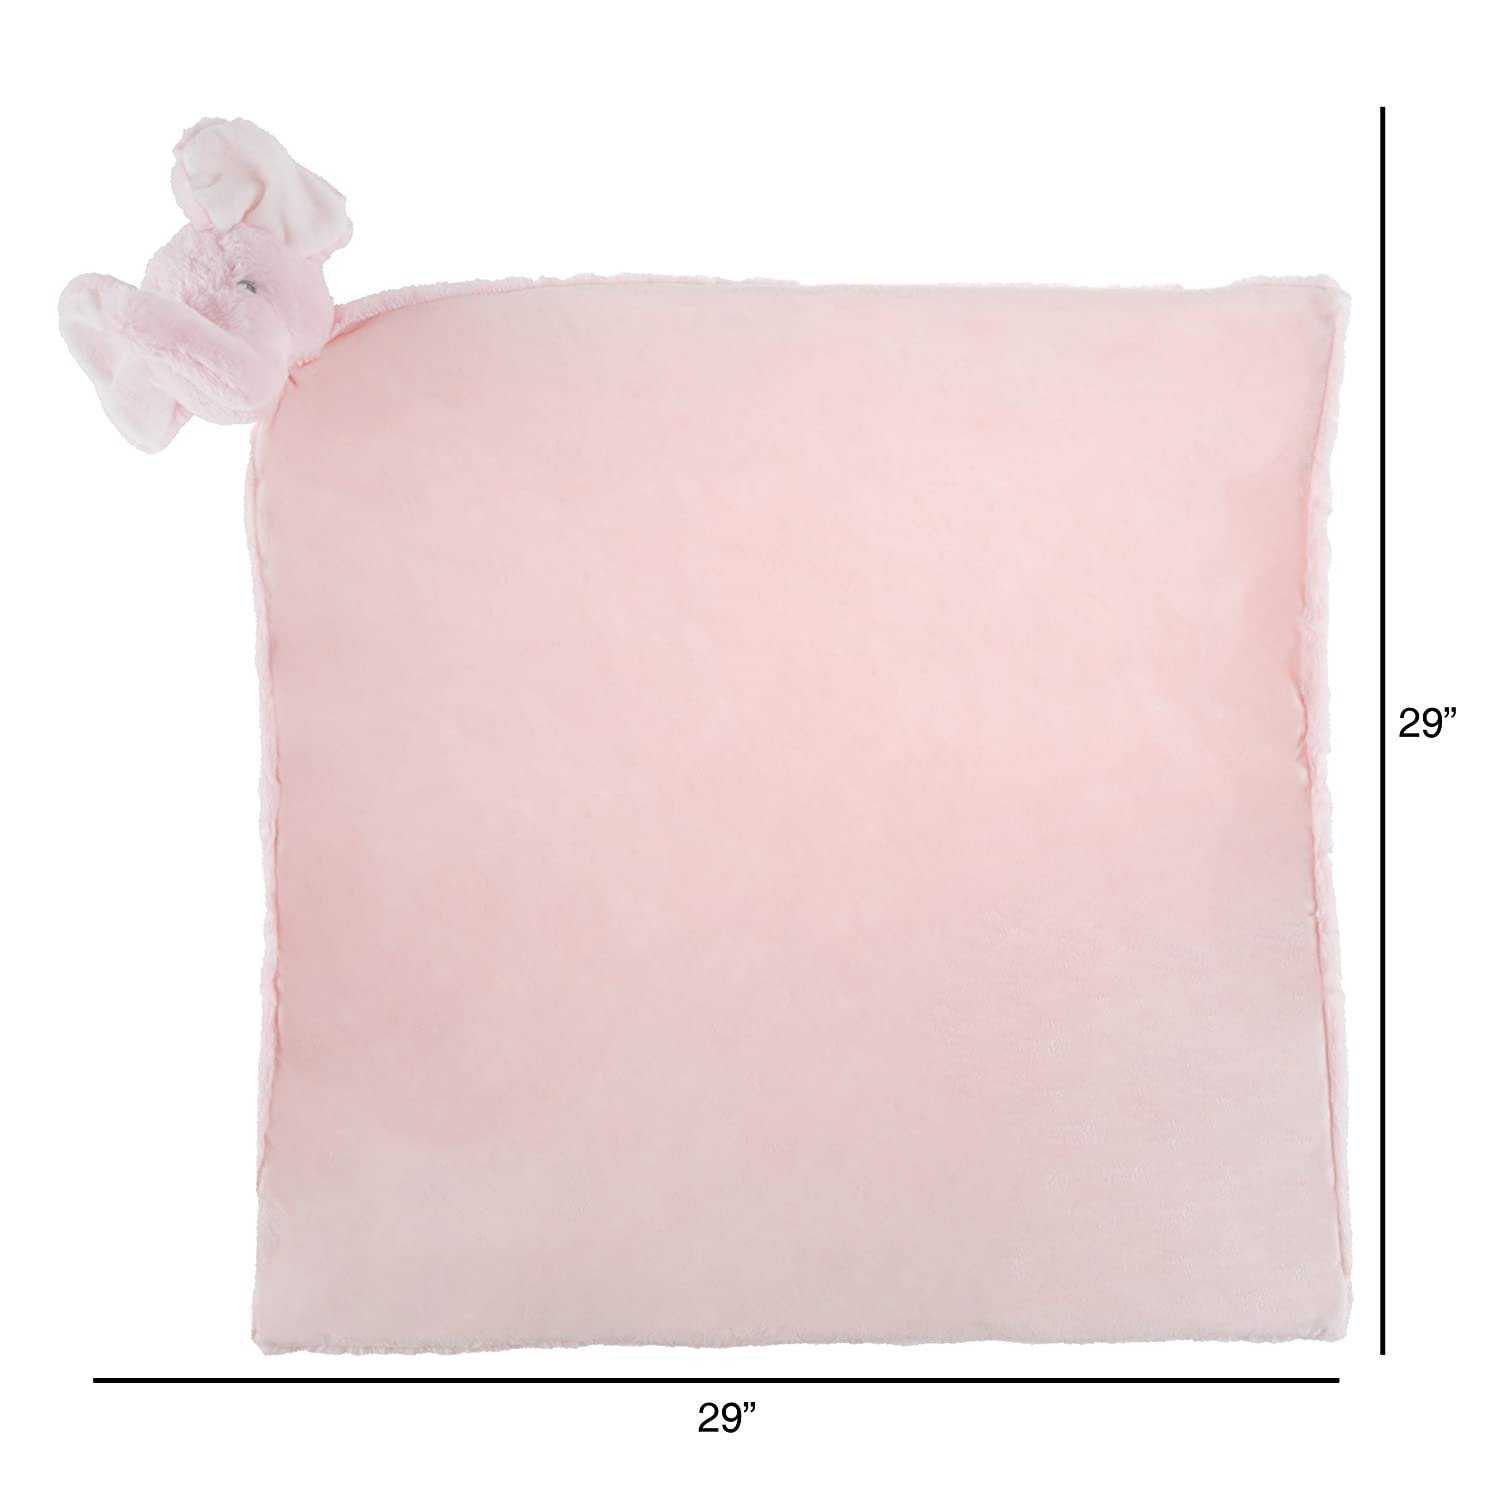 Trademark Global 80-SUM-170333 Lamb-Ivory Sleep and Travel-Snuggly Furry Blankey for Boys and Girls Happy Trails Baby Security Blanket Stuffed Animal-Soft and Cuddly for Play